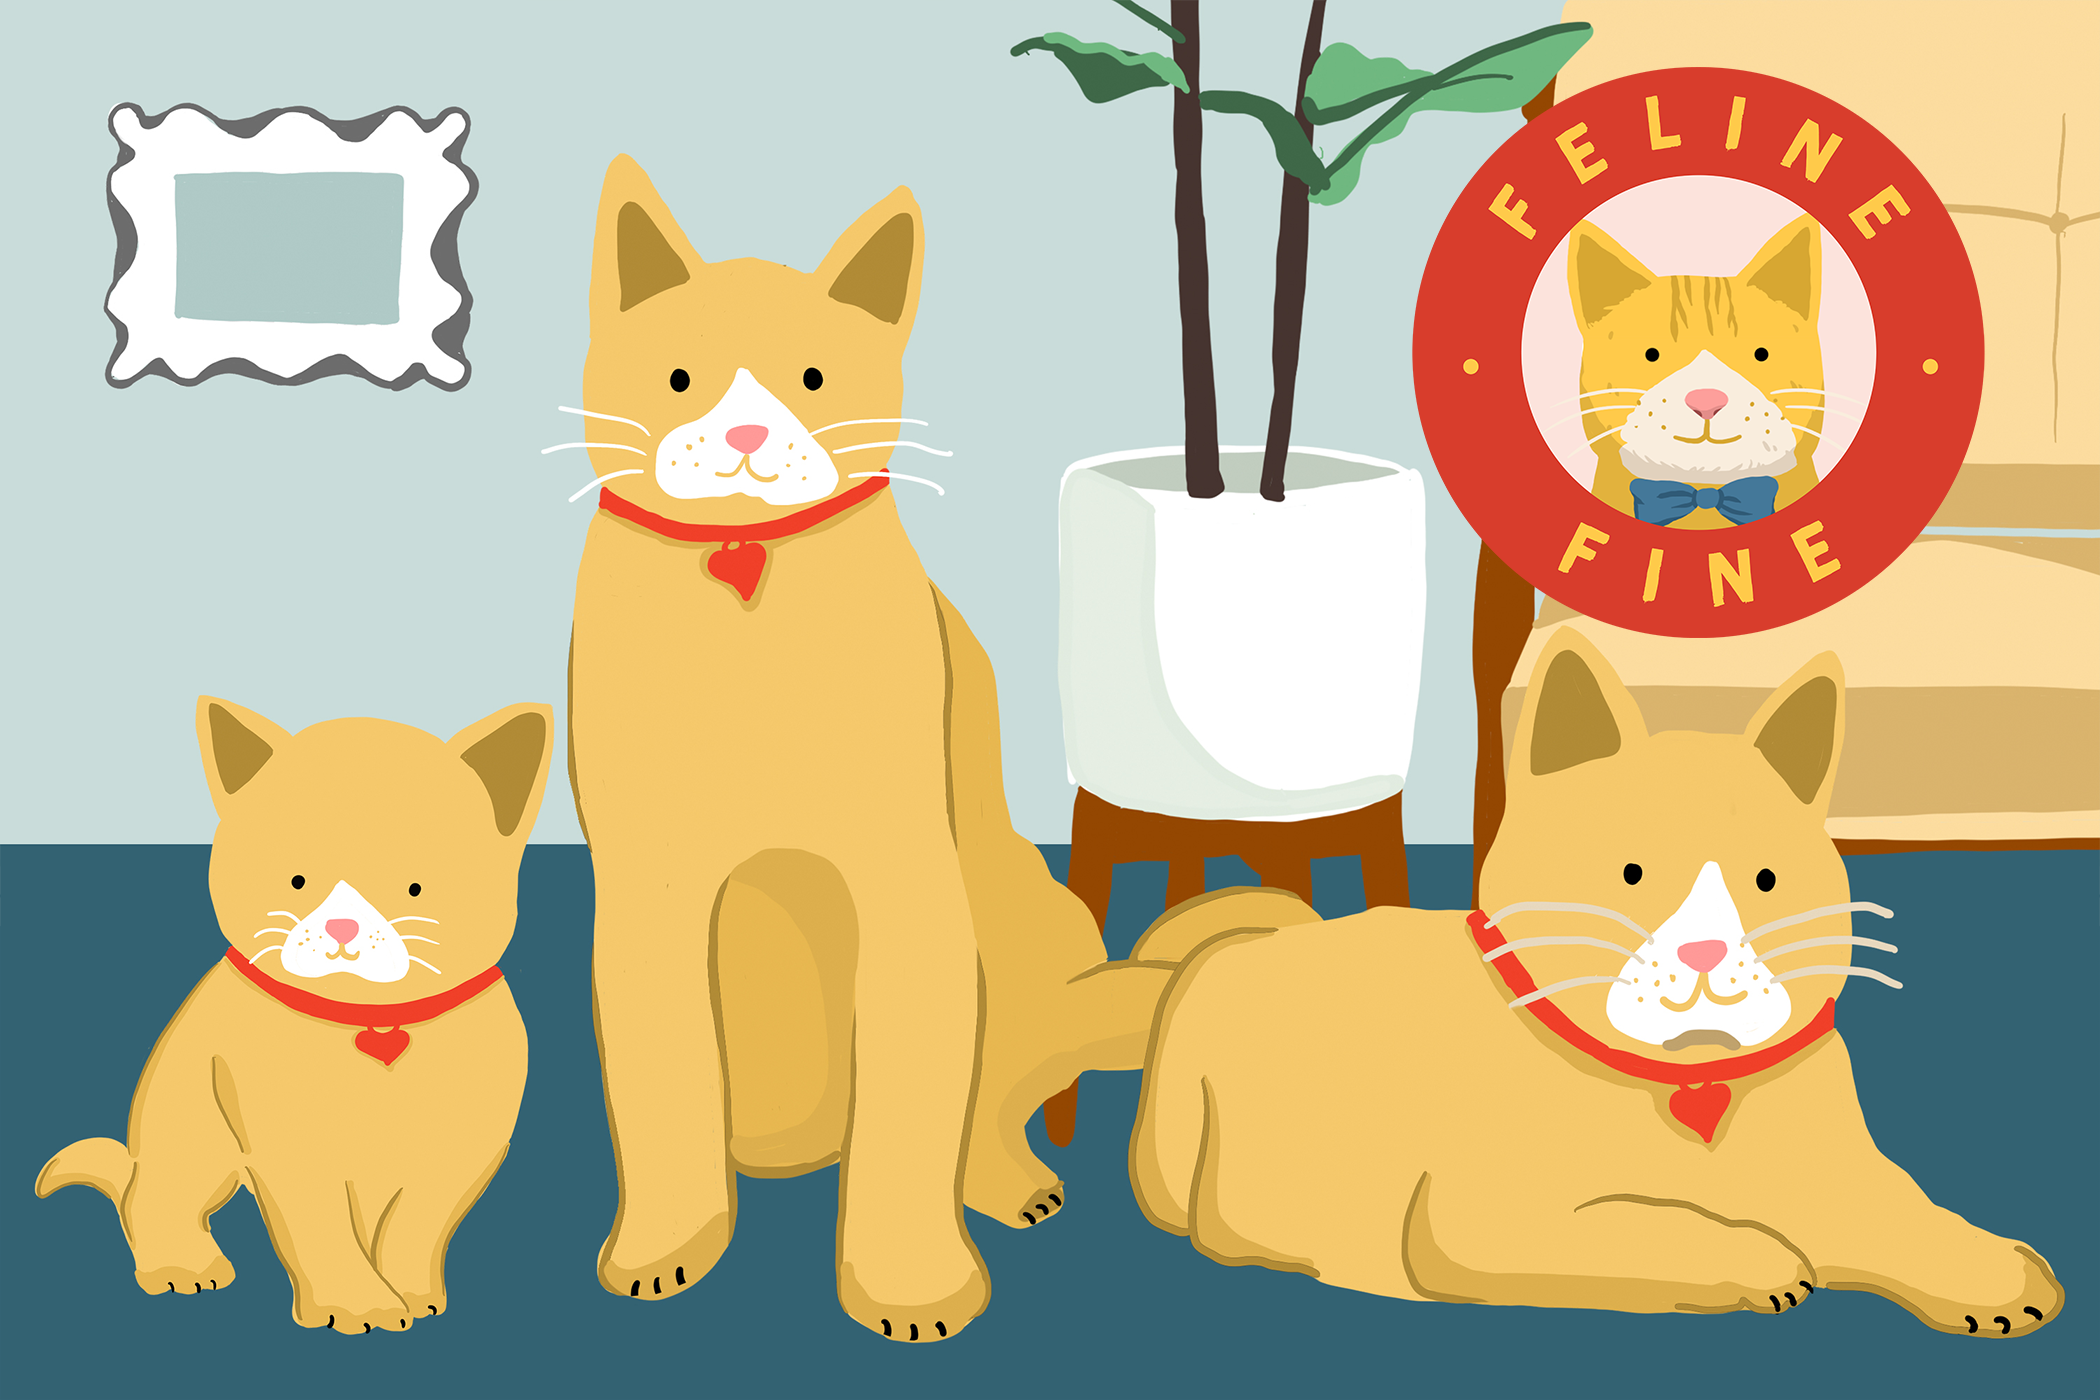 Illustration of three different cats at different ages with Feline Fine logo